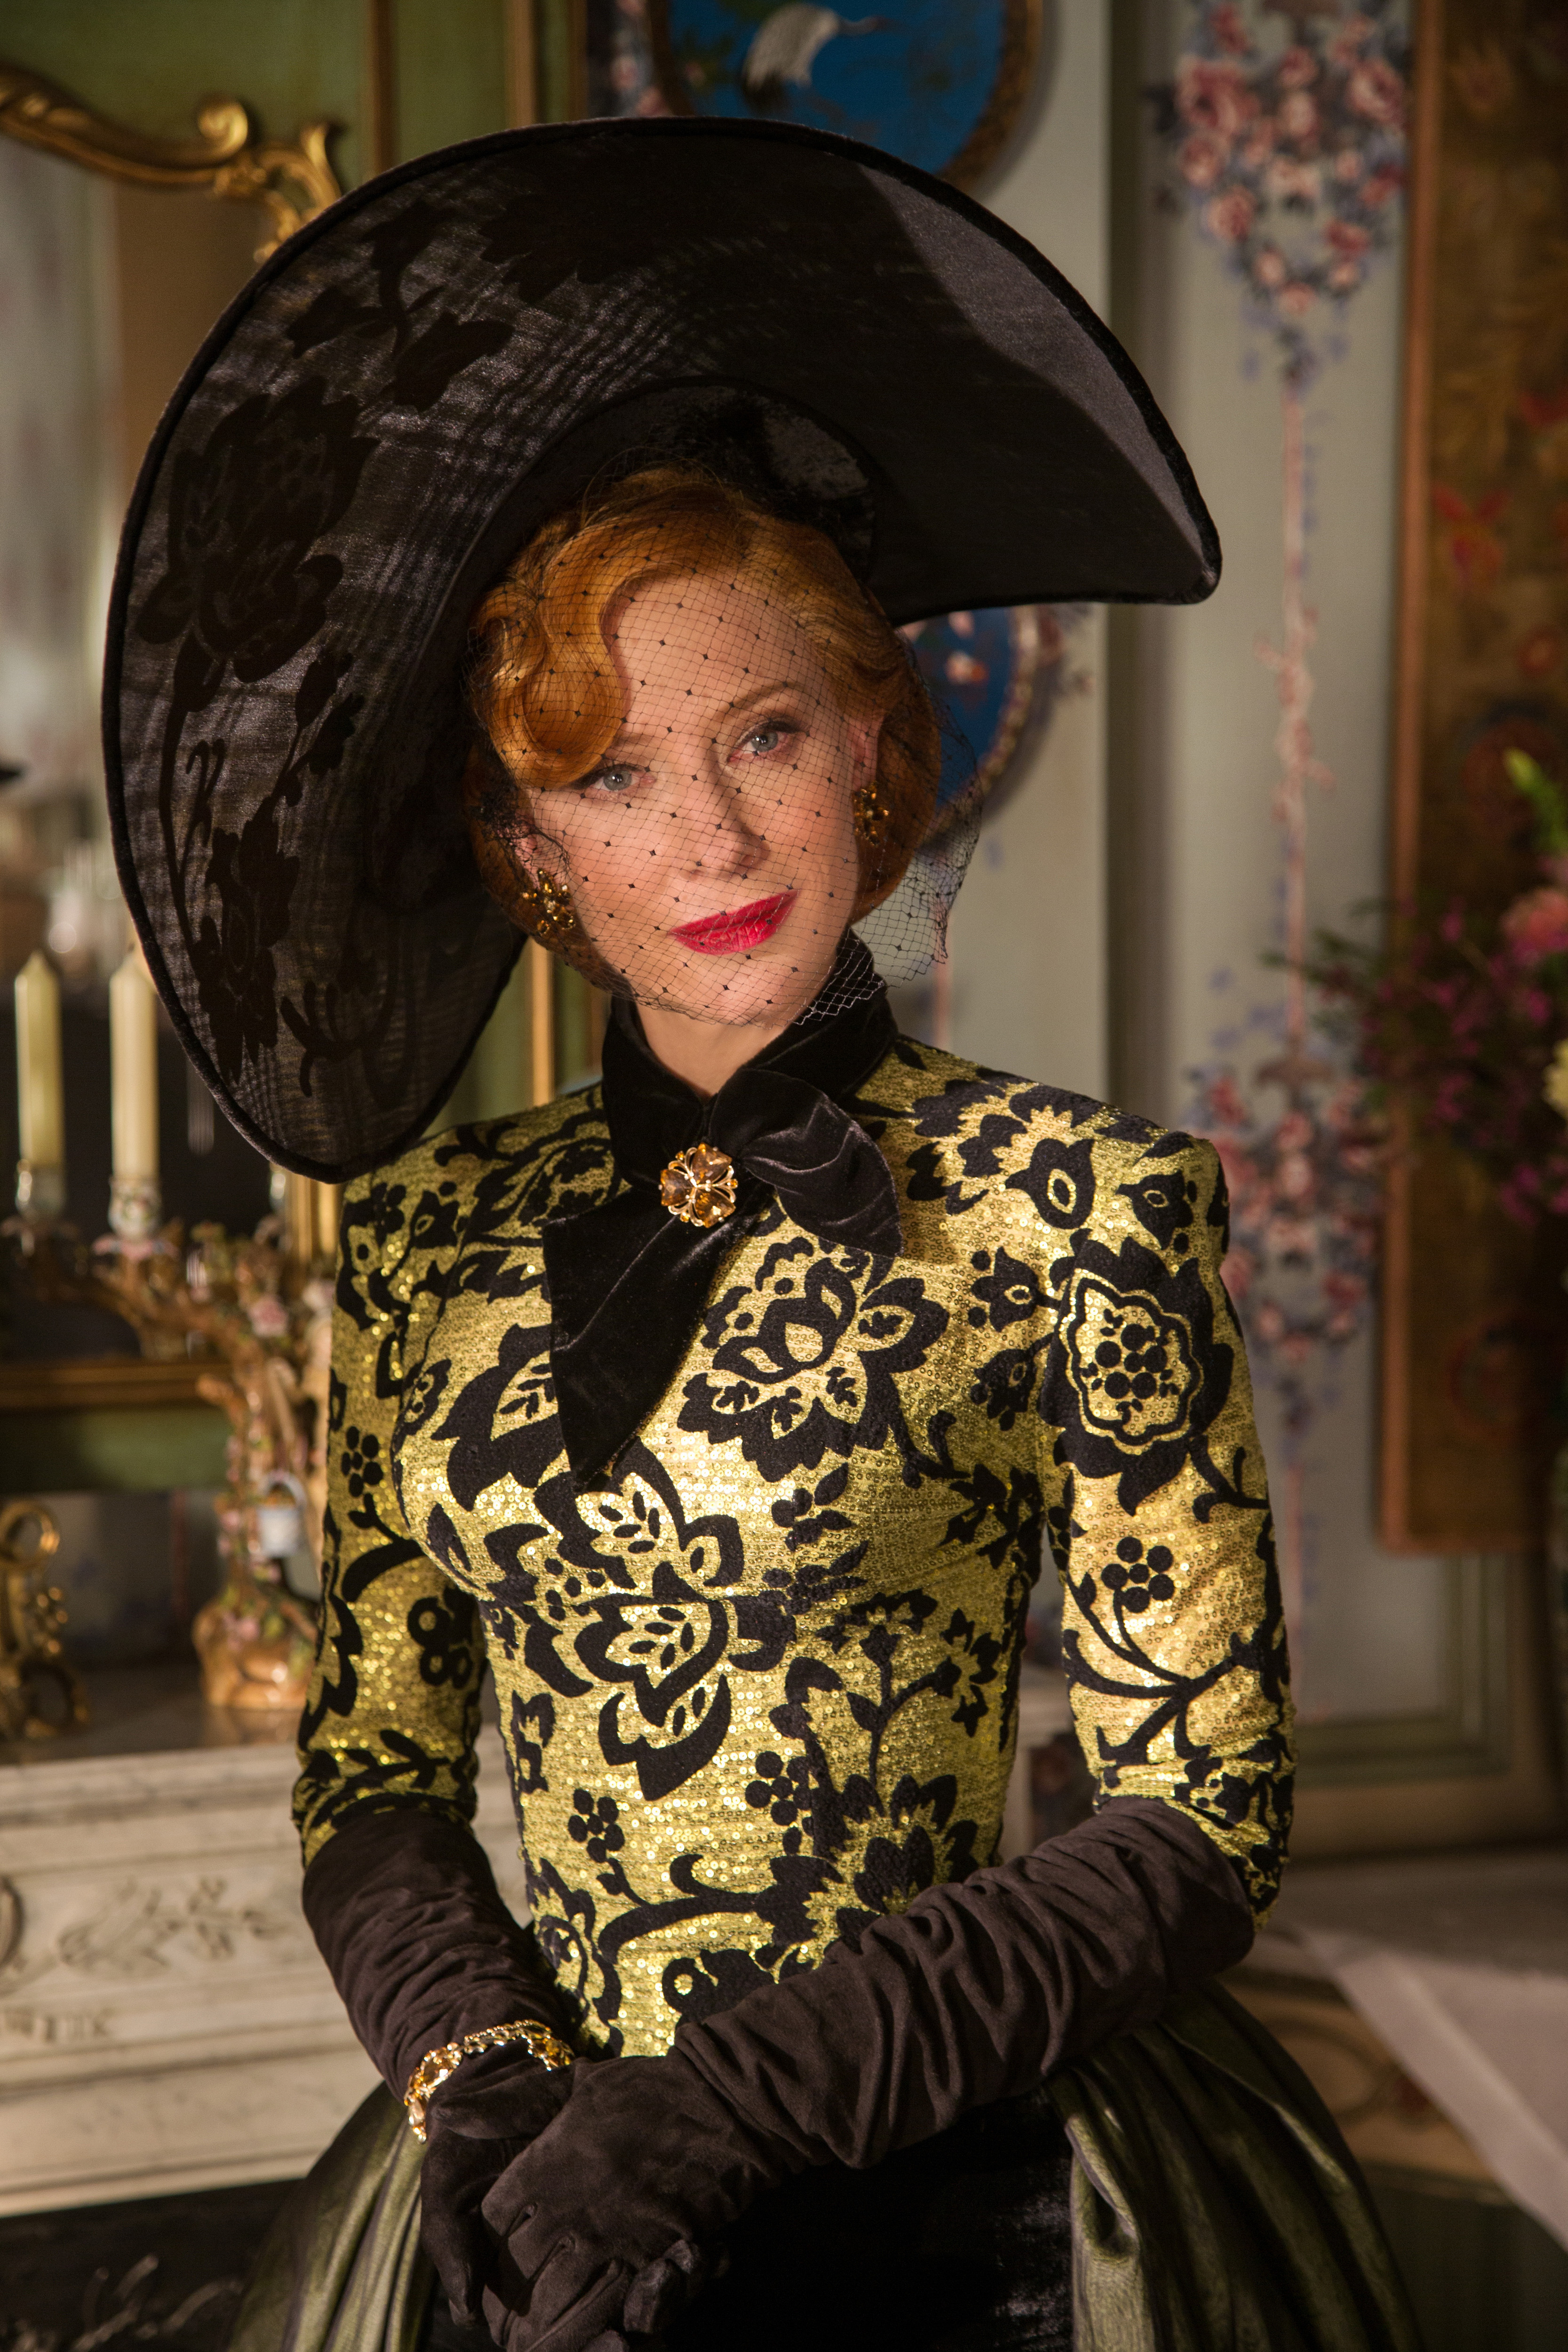 Costume Designer Sandy Powell On Bringing the Magical Cinderella Gowns to Life